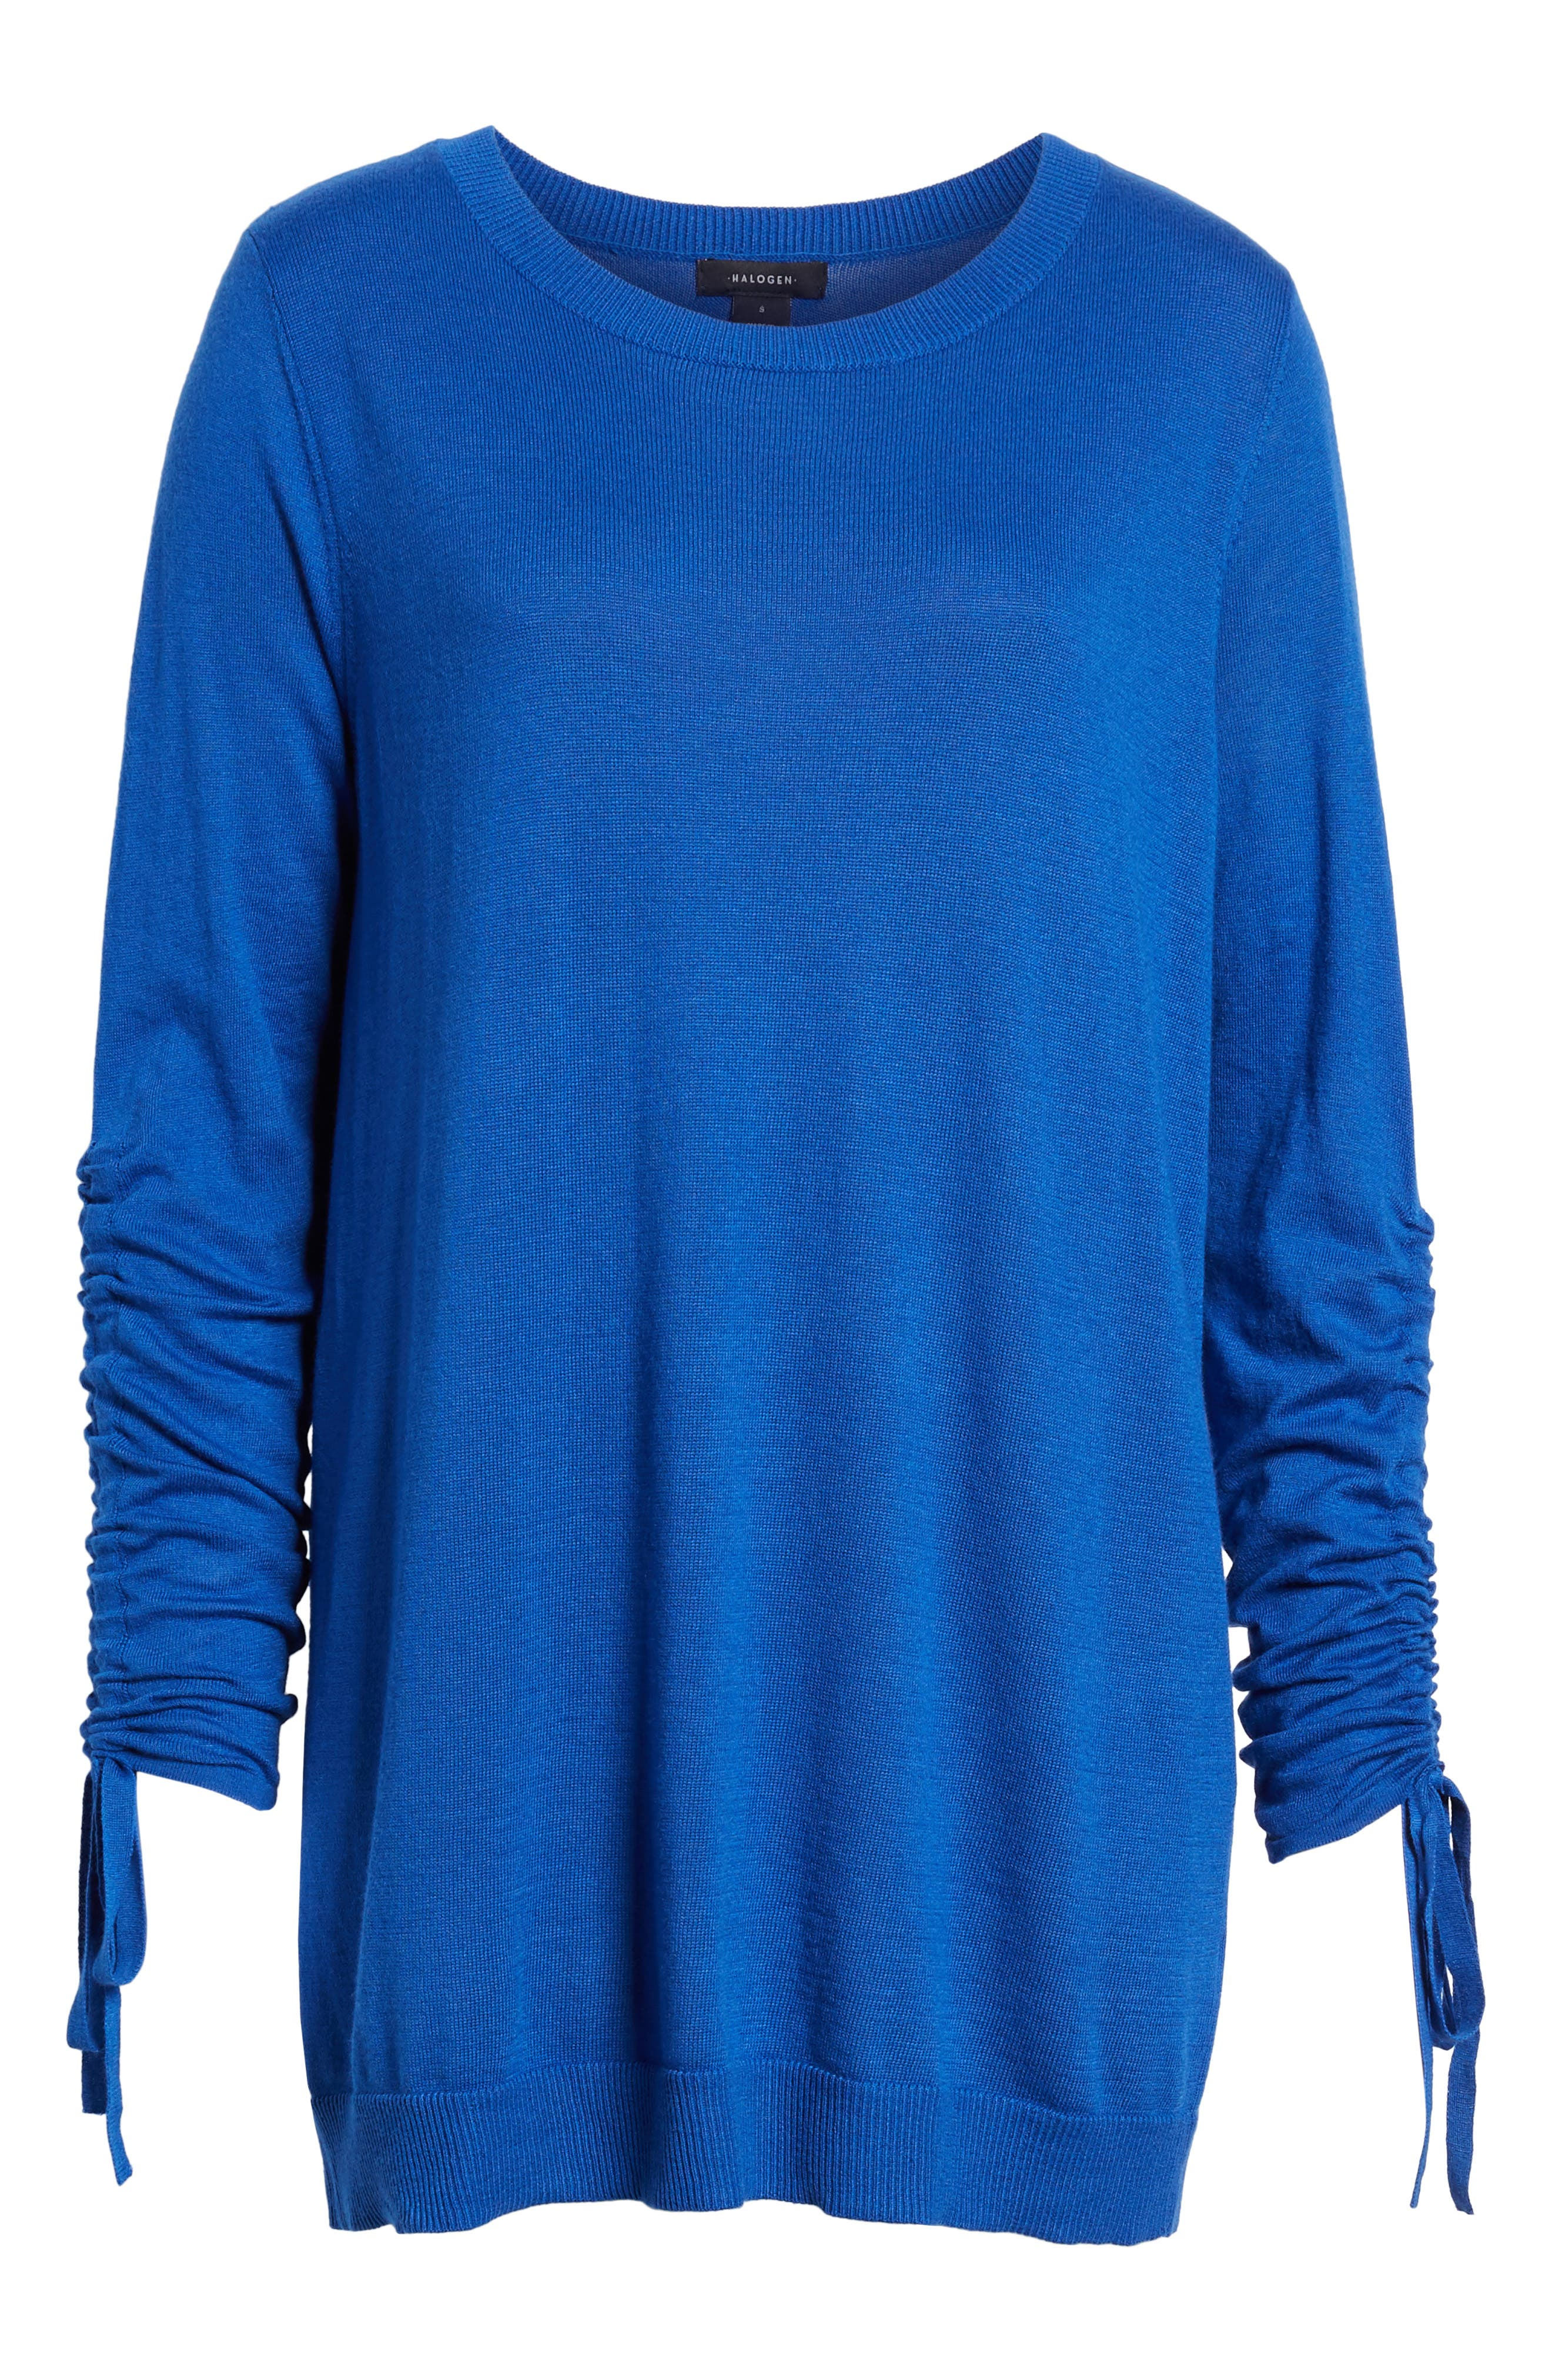 Ruched Sleeve Tunic Sweater,                             Main thumbnail 1, color,                             Blue Surf